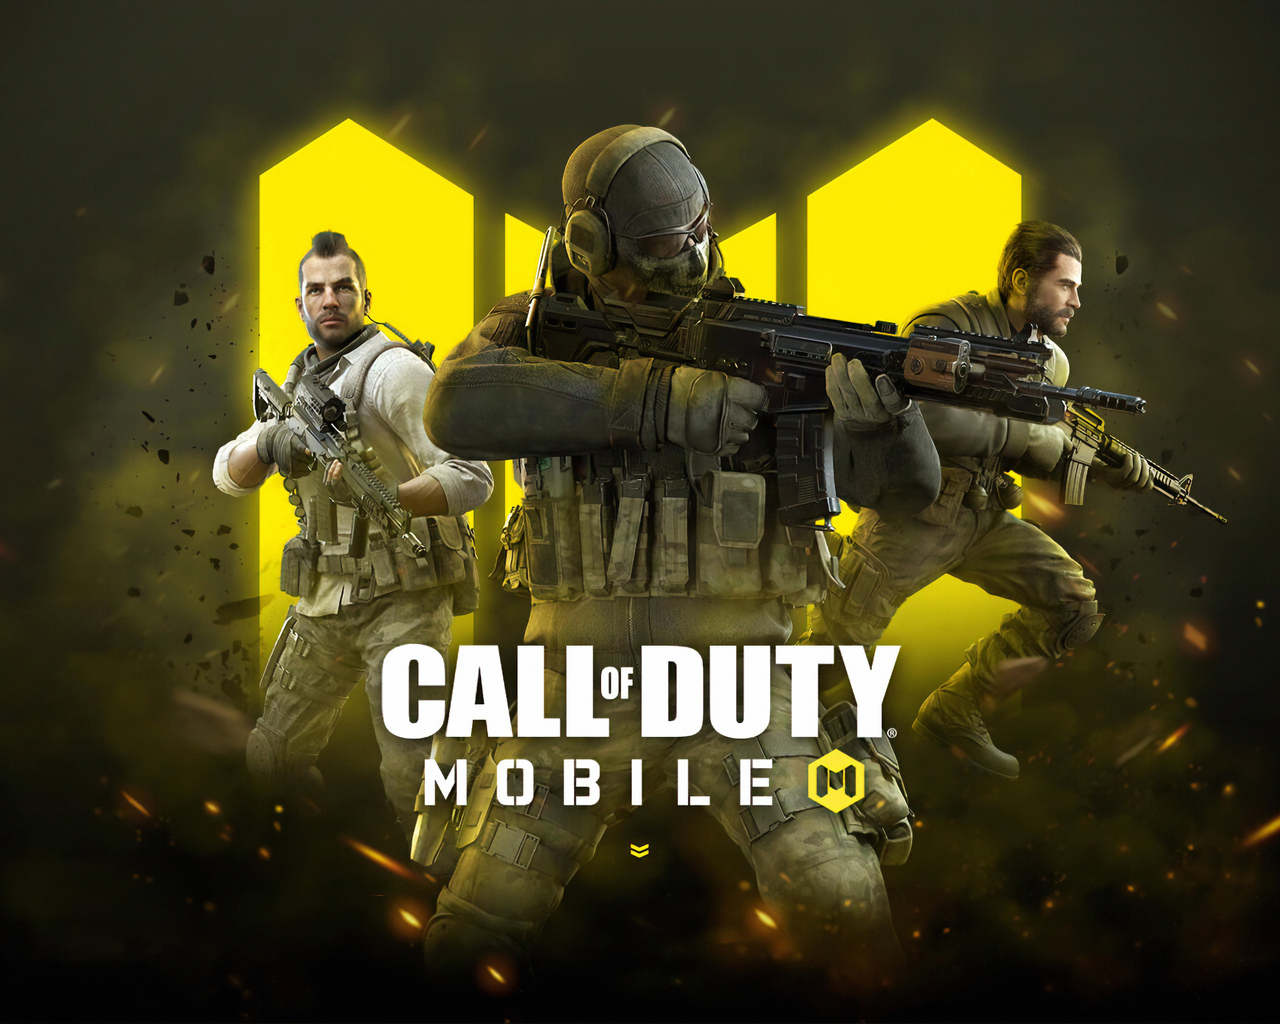 1280x1024 Call Of Duty Mobile 4k 2019 1280x1024 Resolution ...